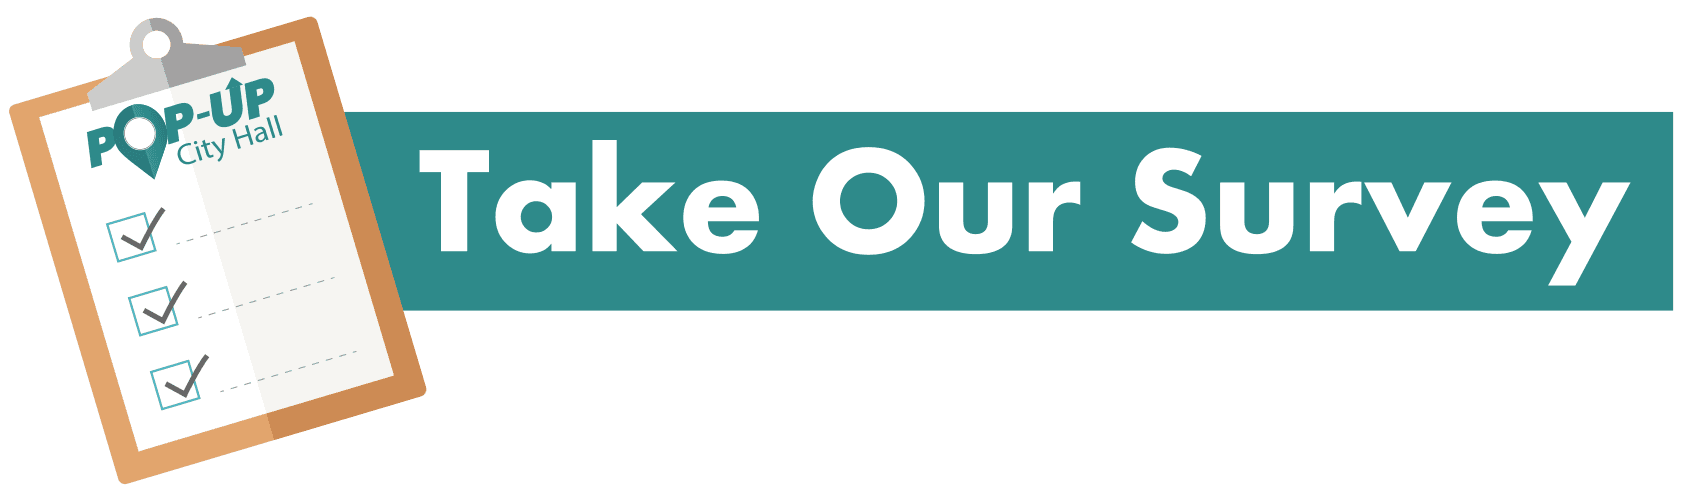 TakeOurSurvey Button, teal pop up city hall logo, with clipboard vector